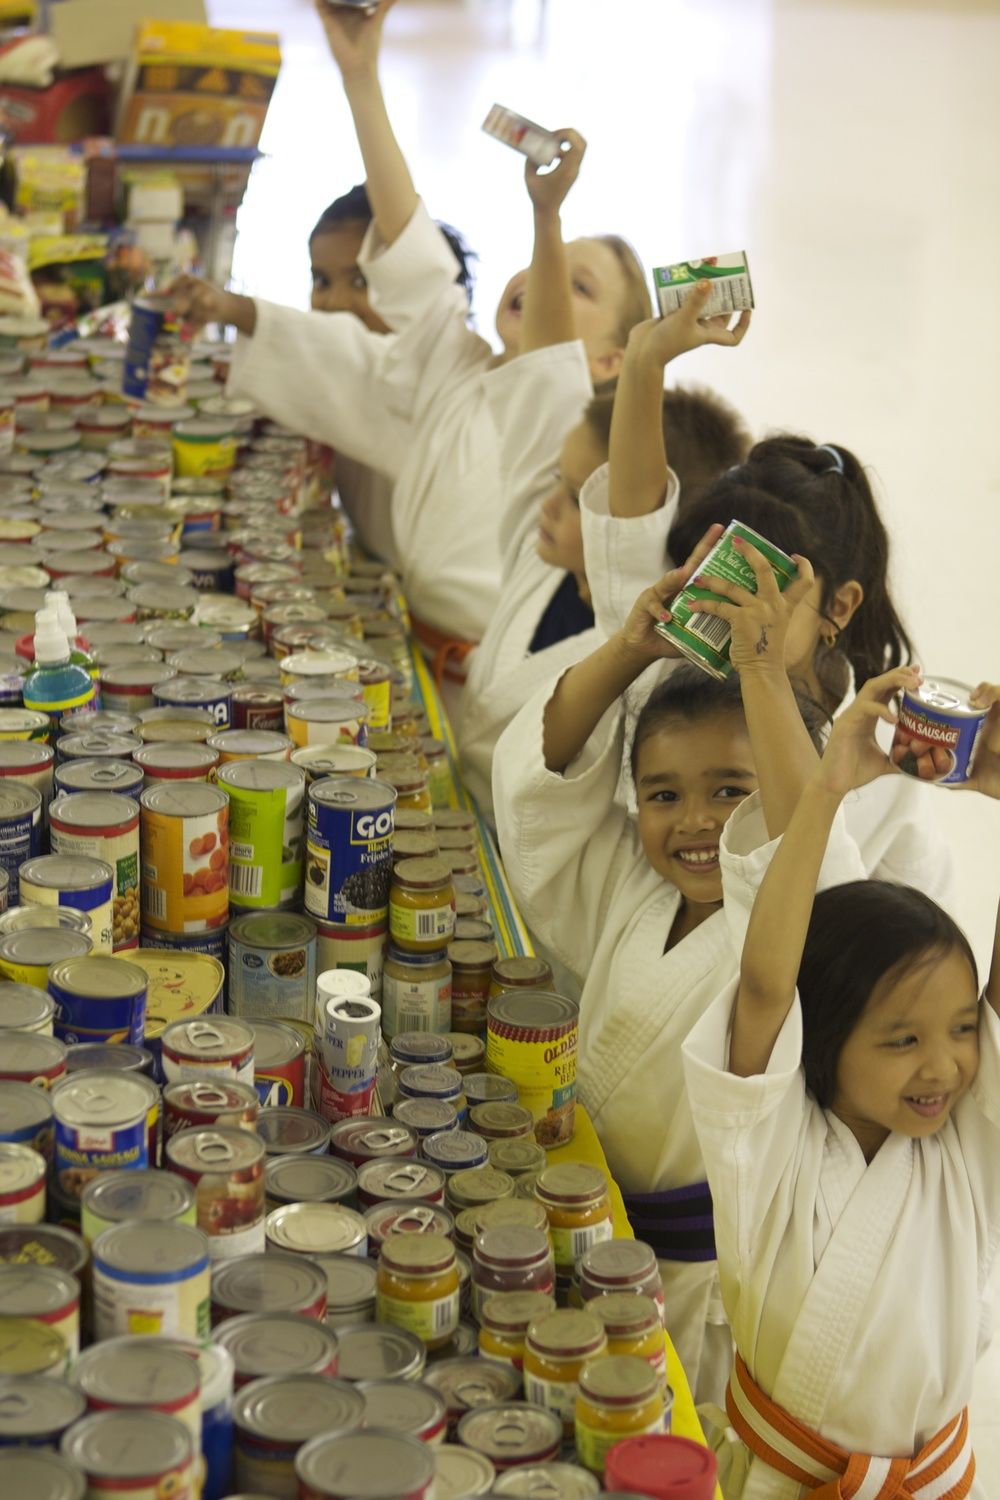 thedojo-food-drive-martial-arts-karate-kids-doing-community-service-in-rutherford-nj_14690989653_o.jpg